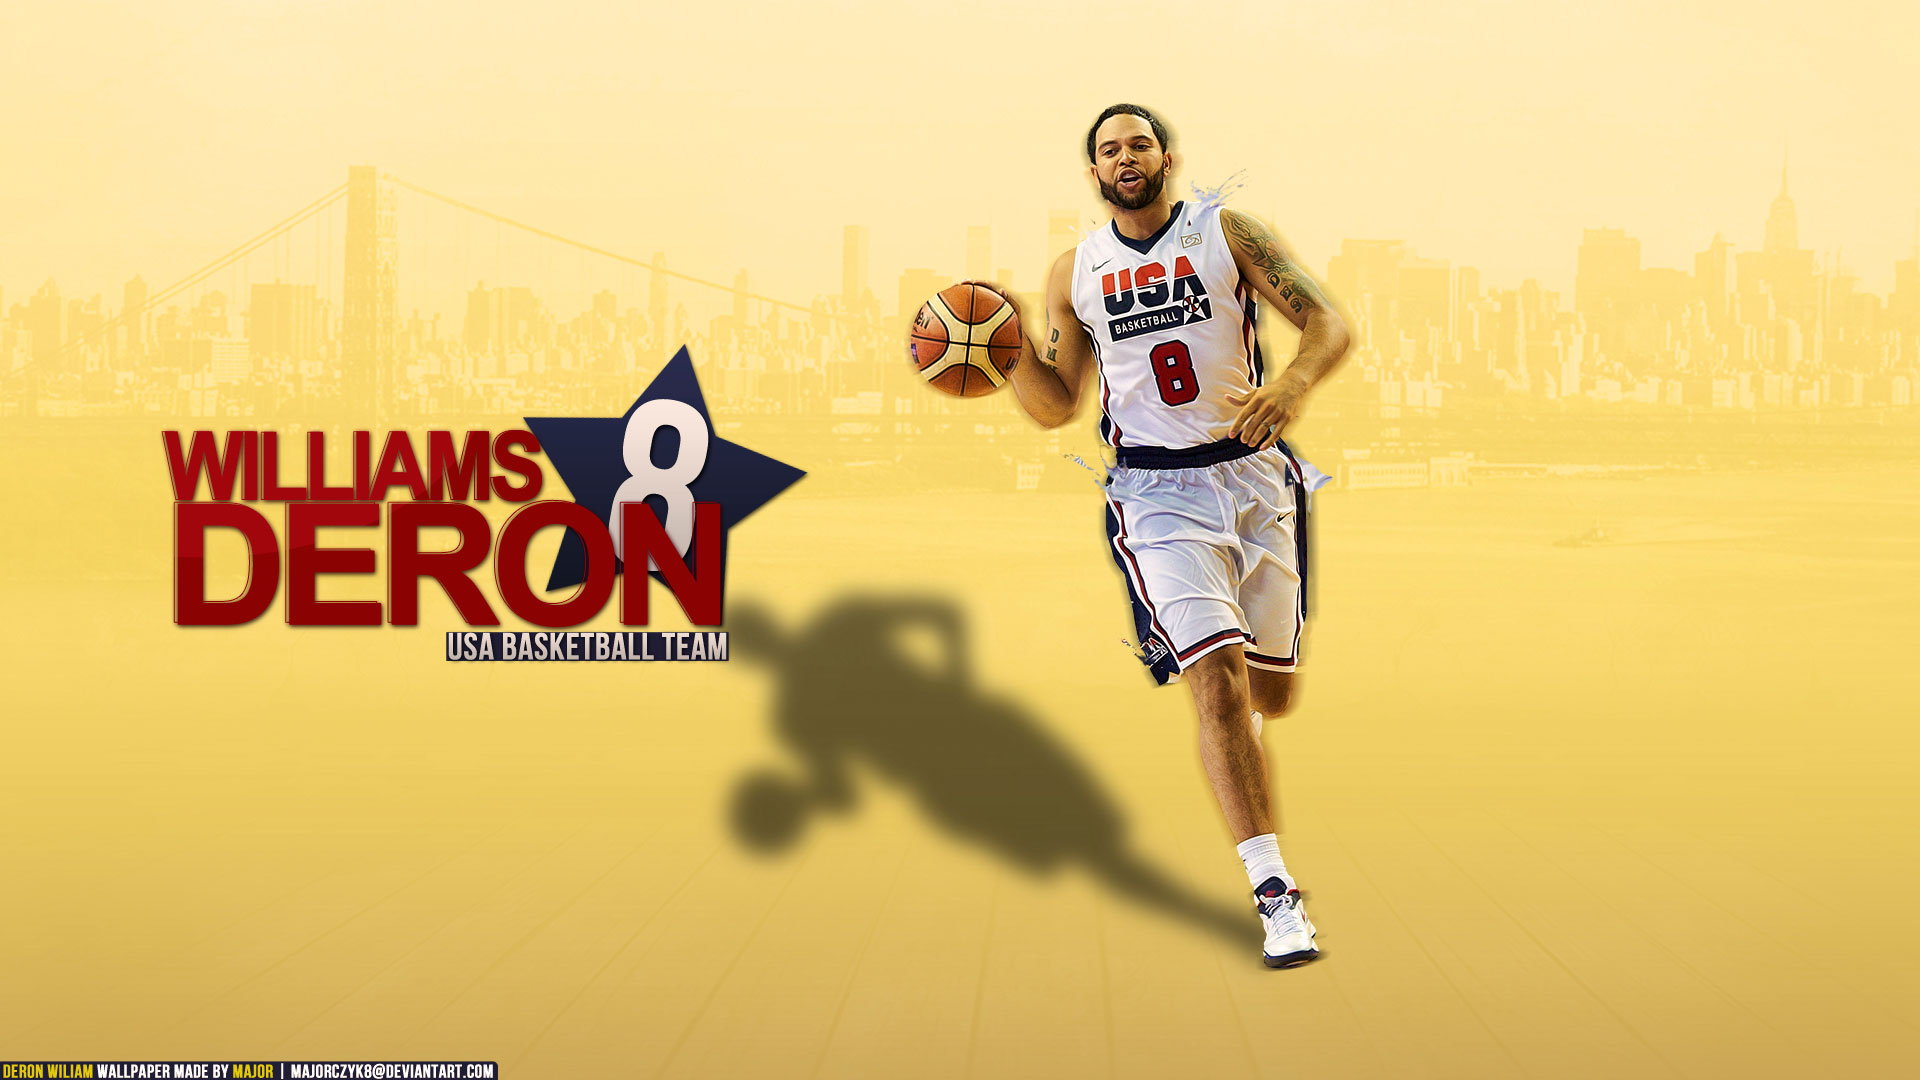 http://www.basketwallpapers.com/Images-11/Deron-Williams-London-2012-1920x1080-Wallpaper-BasketWallpapers.com-.jpg